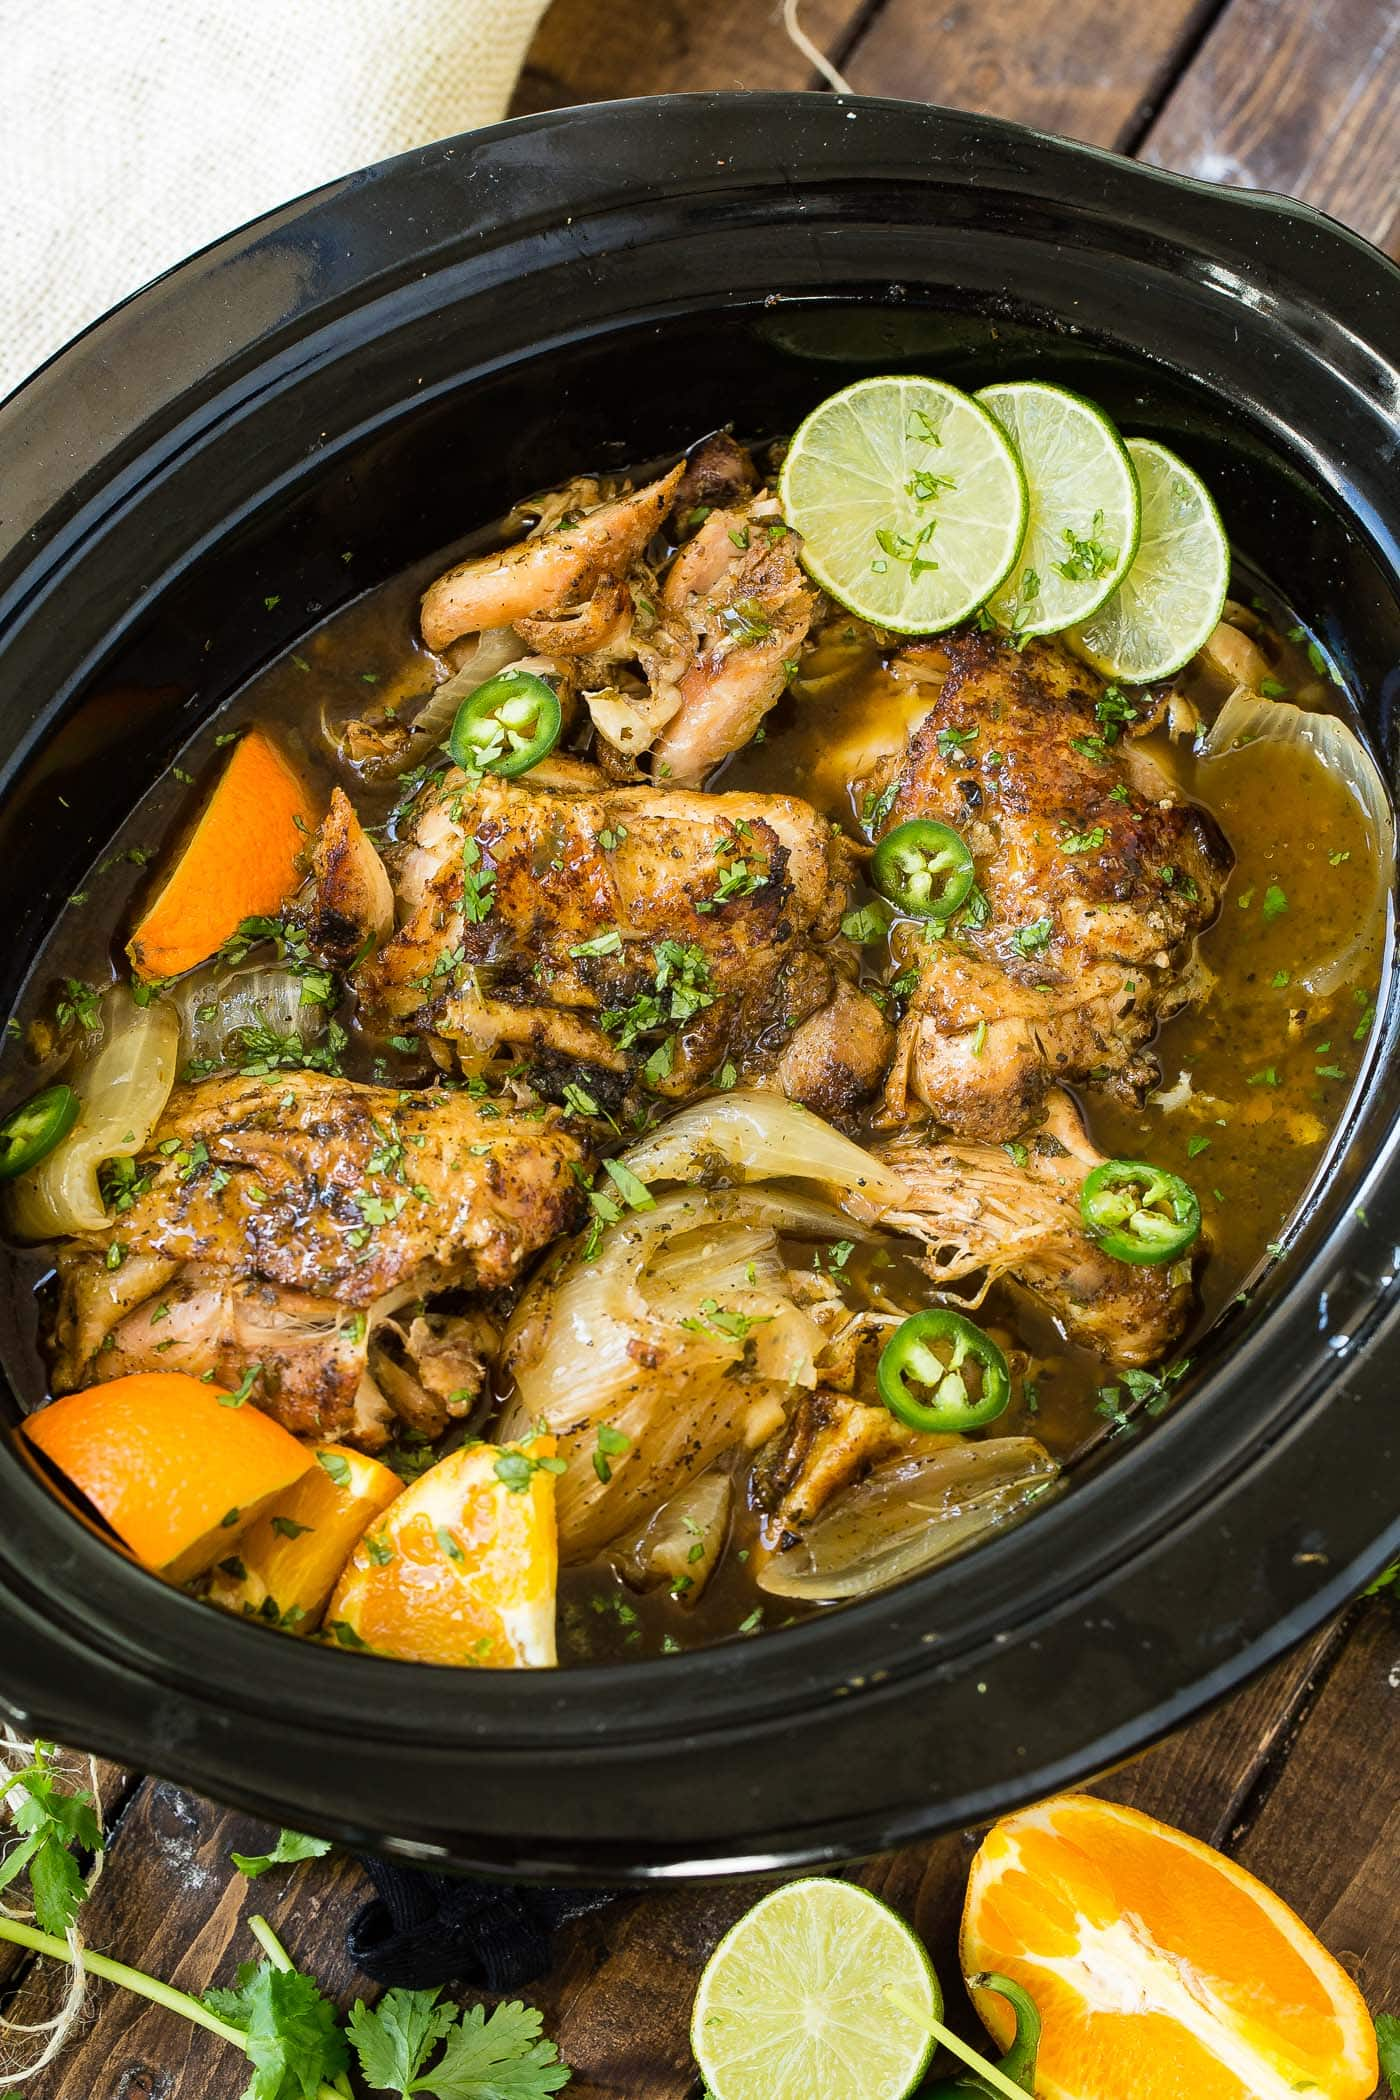 A photo of chicken carnitas being cooked in a slow cooker witl slices of fresh lime.